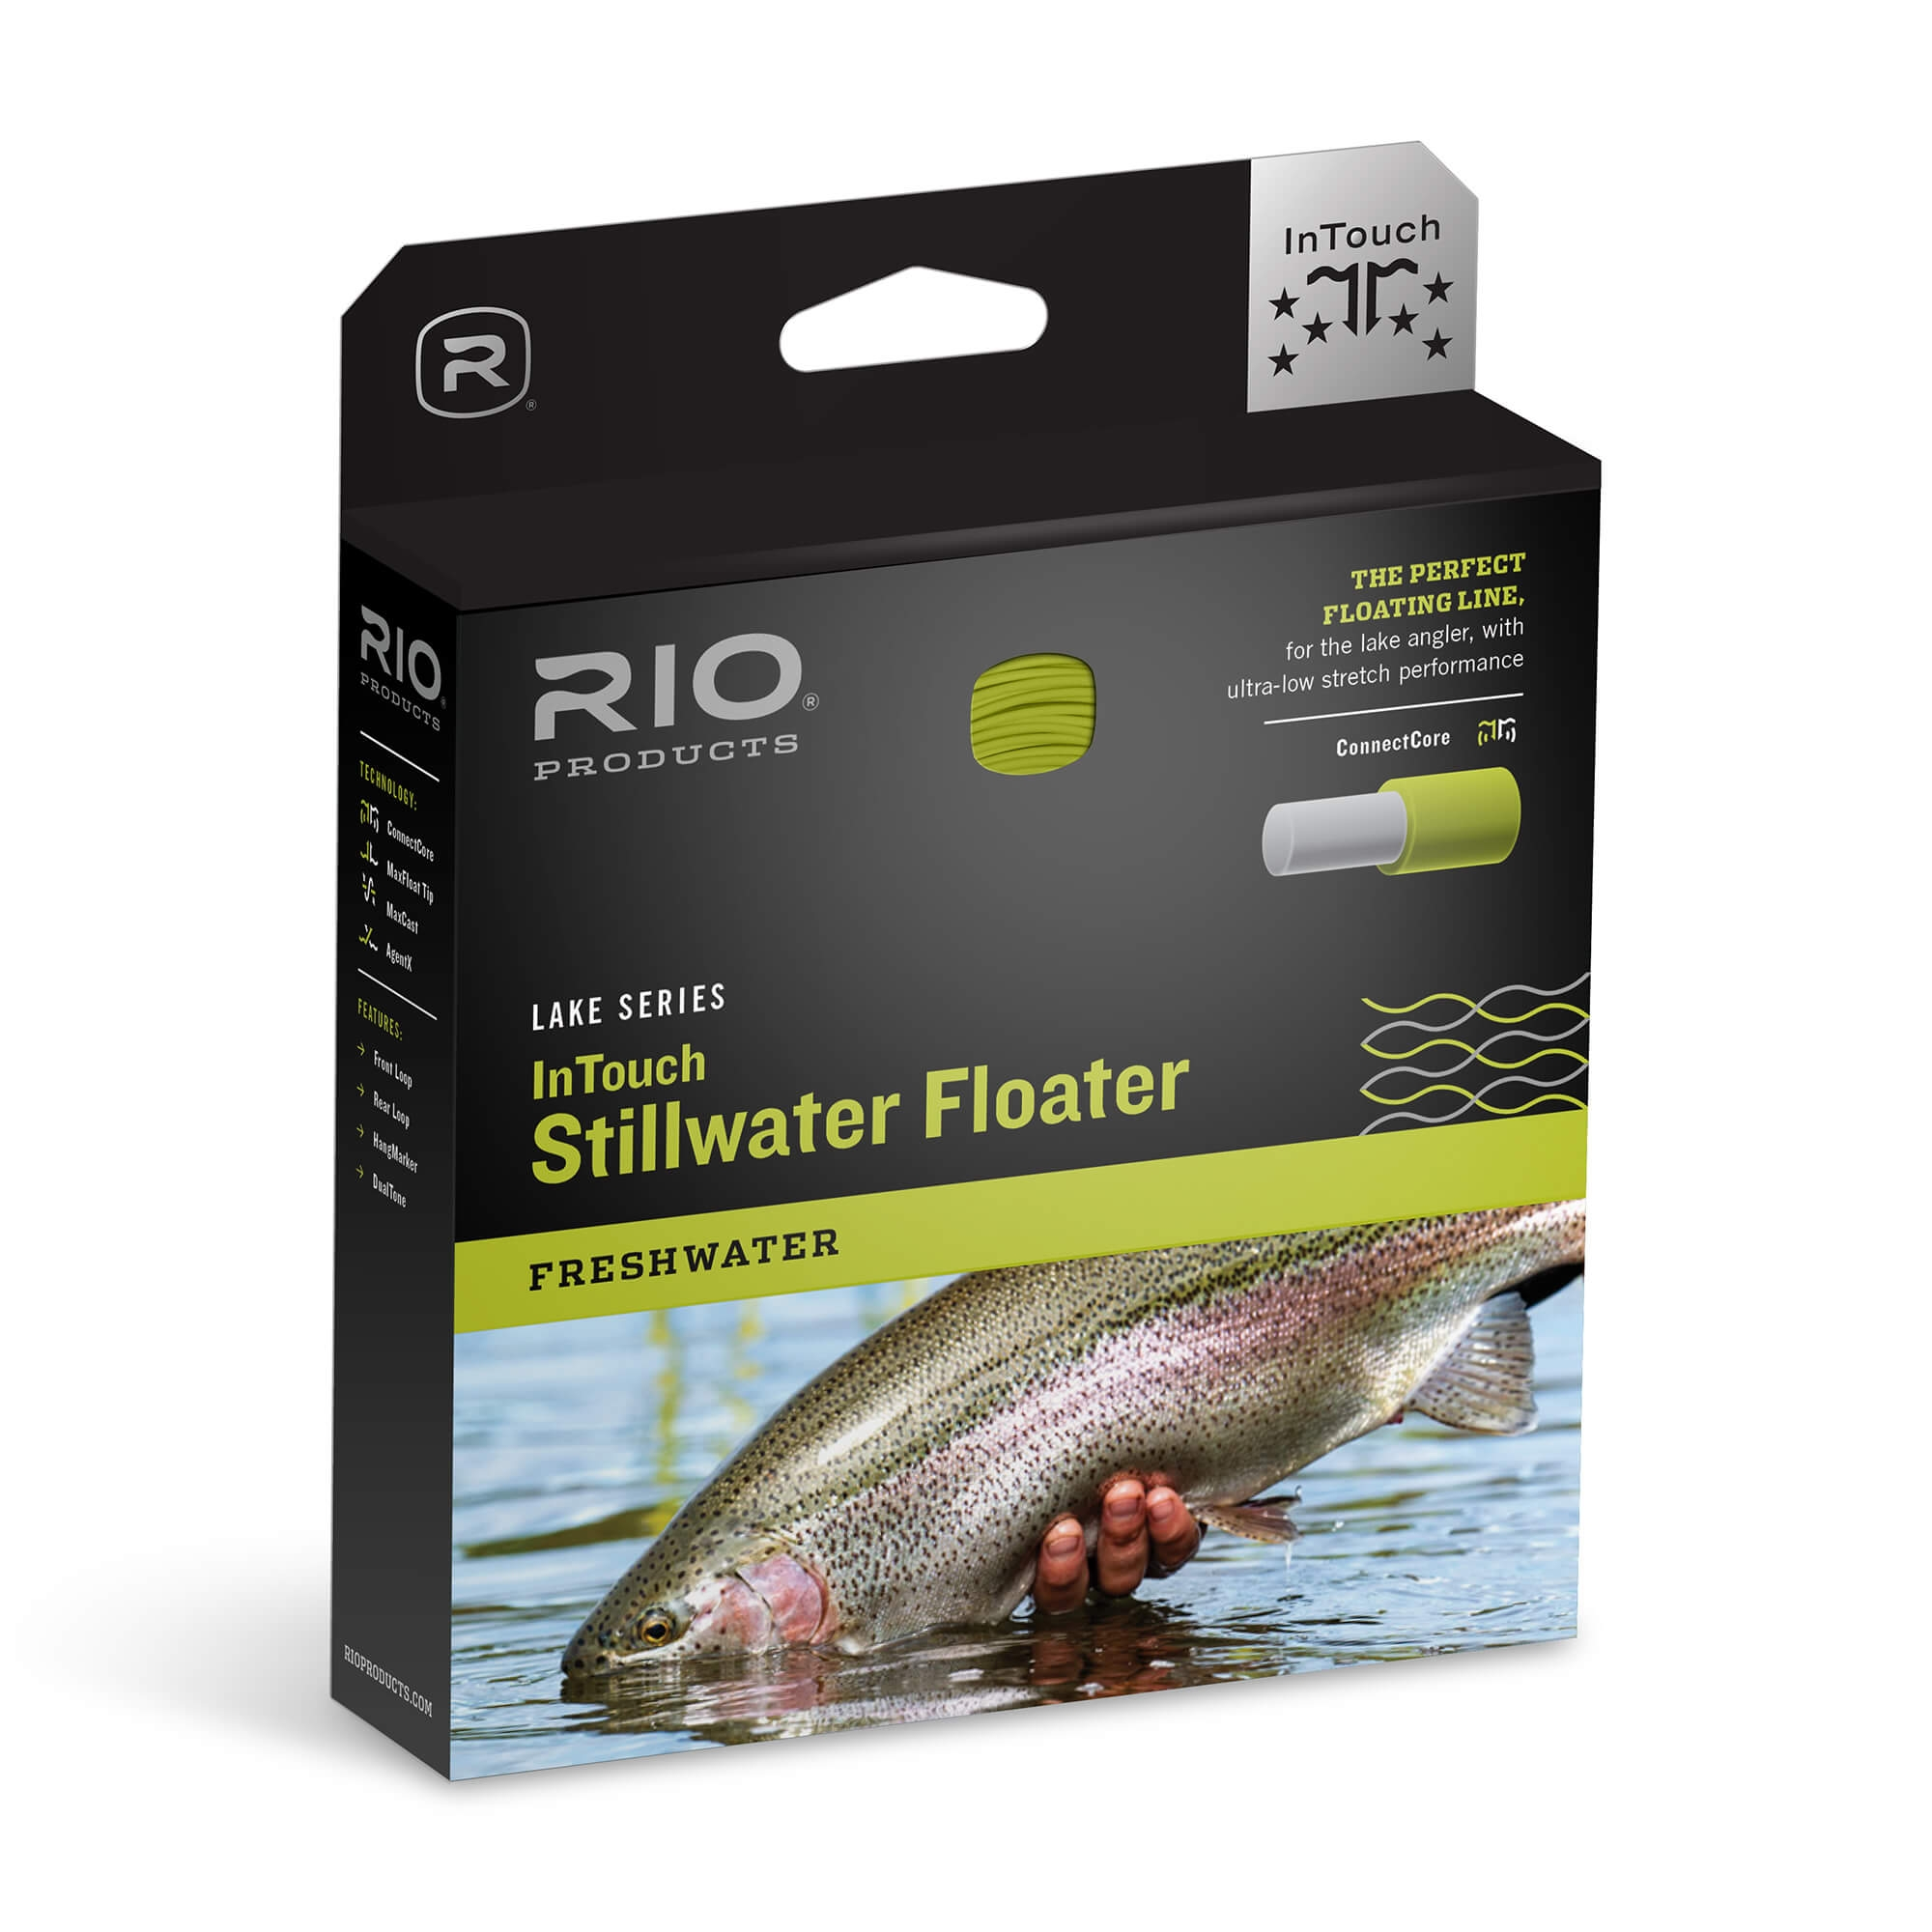 InTouch Stillwater Floater